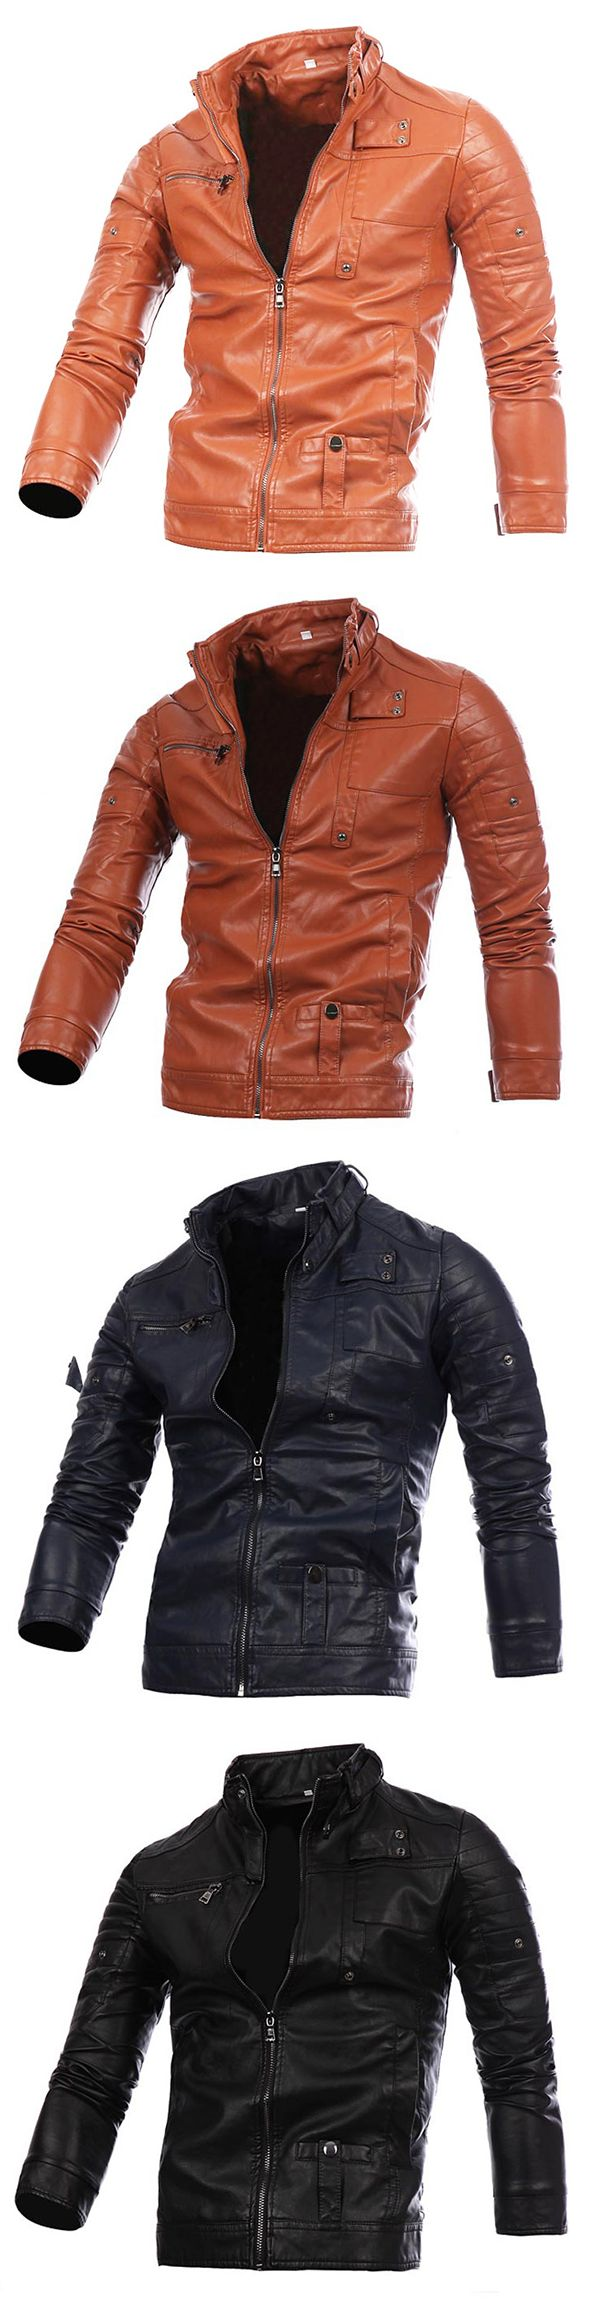 US$34.66 Plus Size Stylish Stitching Collar Button Motorcycle PU Leather Jackets for Men